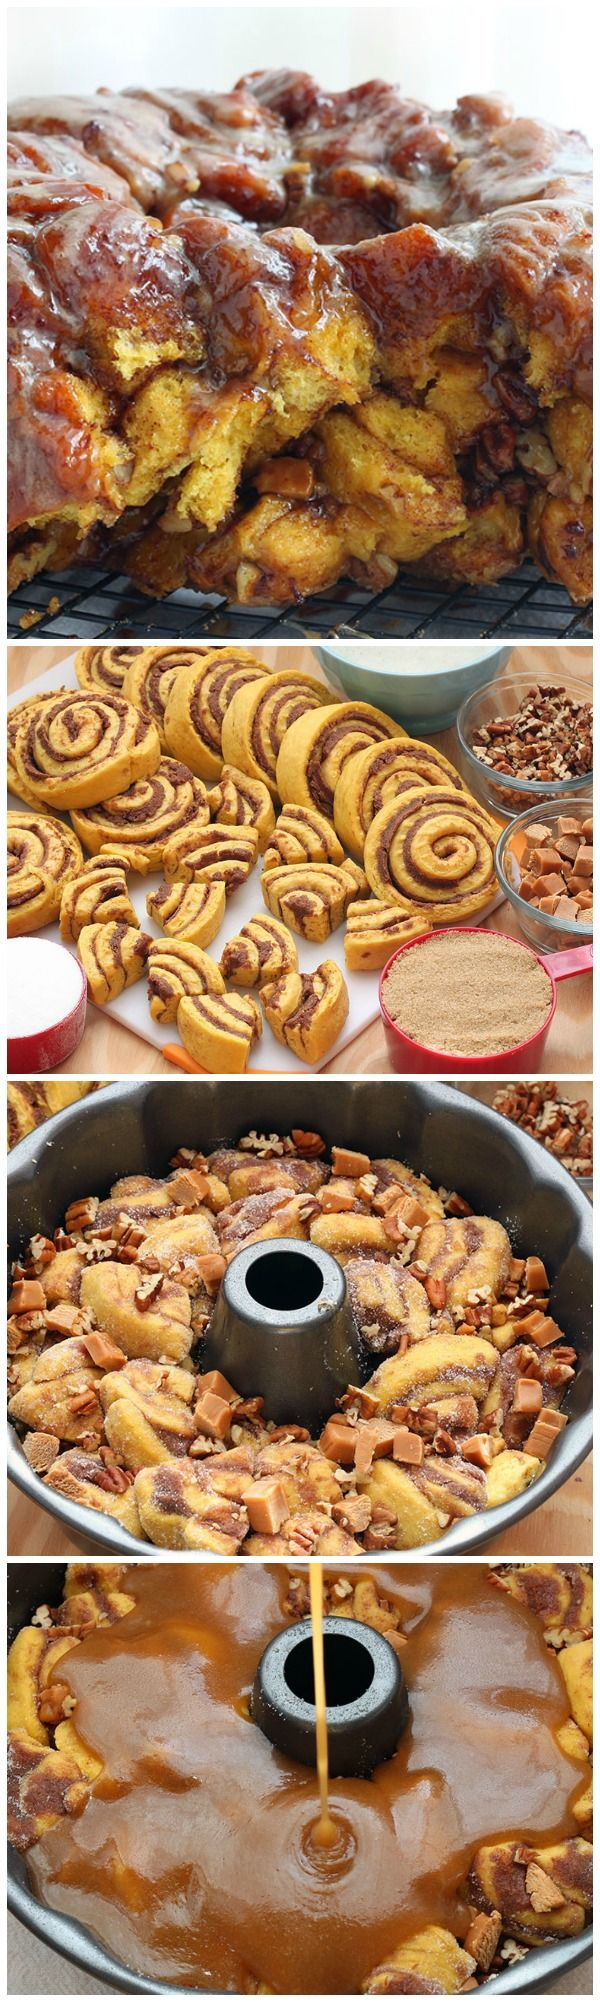 Best Idea Ever: Pumpkin-Cinnamon Roll Monkey Bread